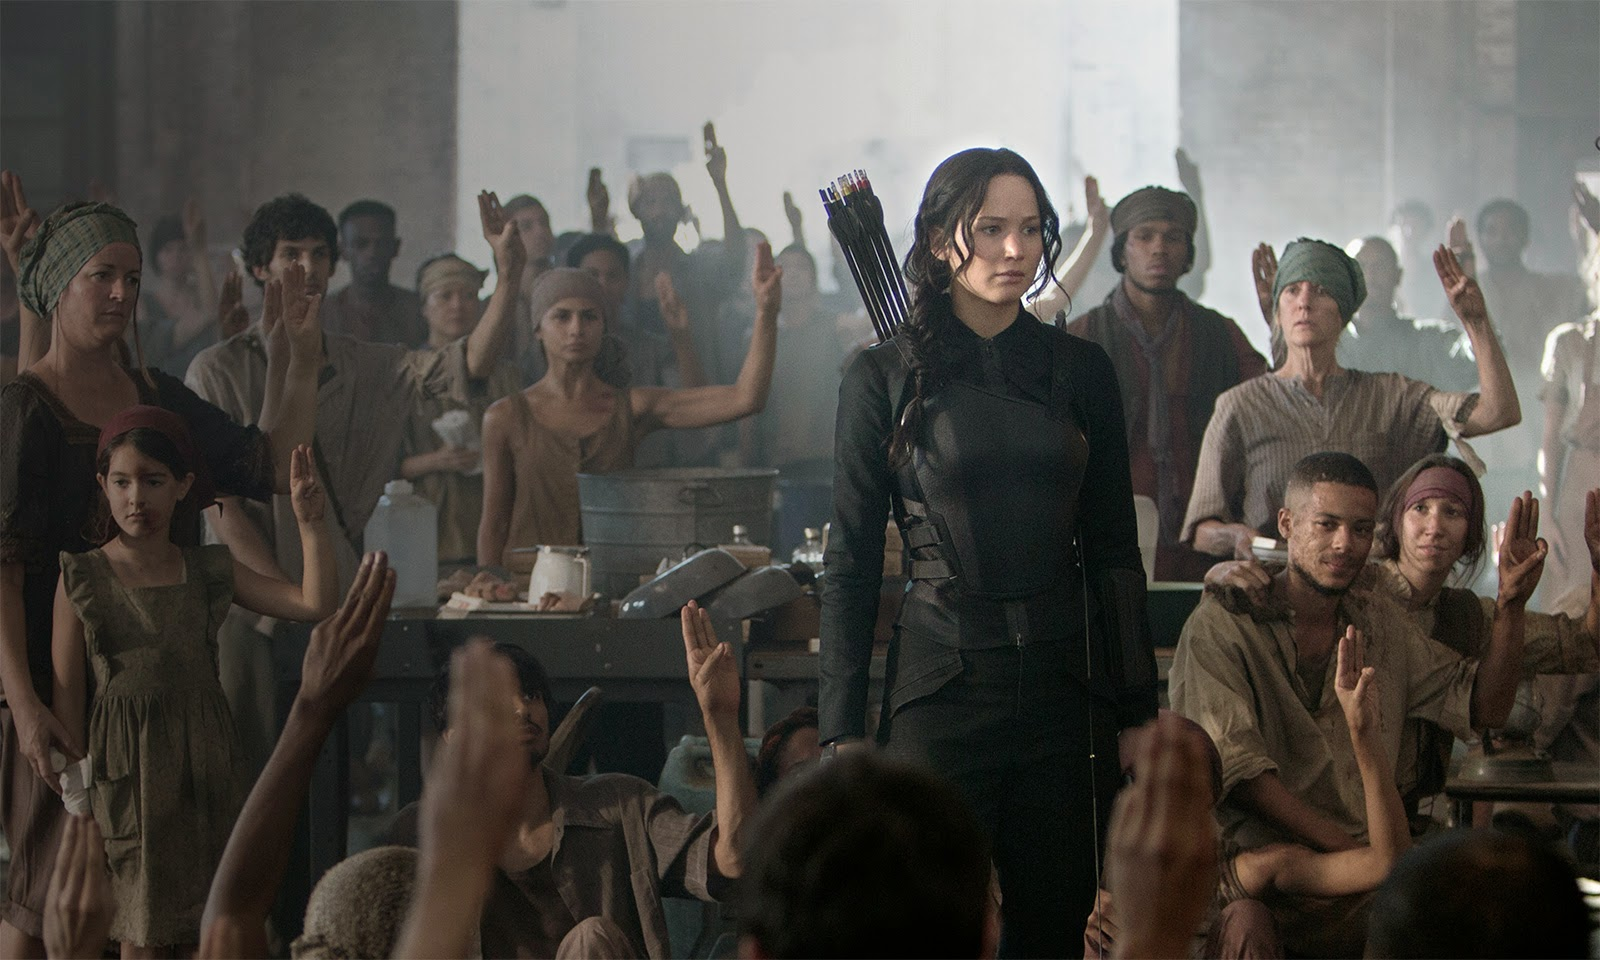 Movie Review – Hunger Games, The: Mockingjay Part 1